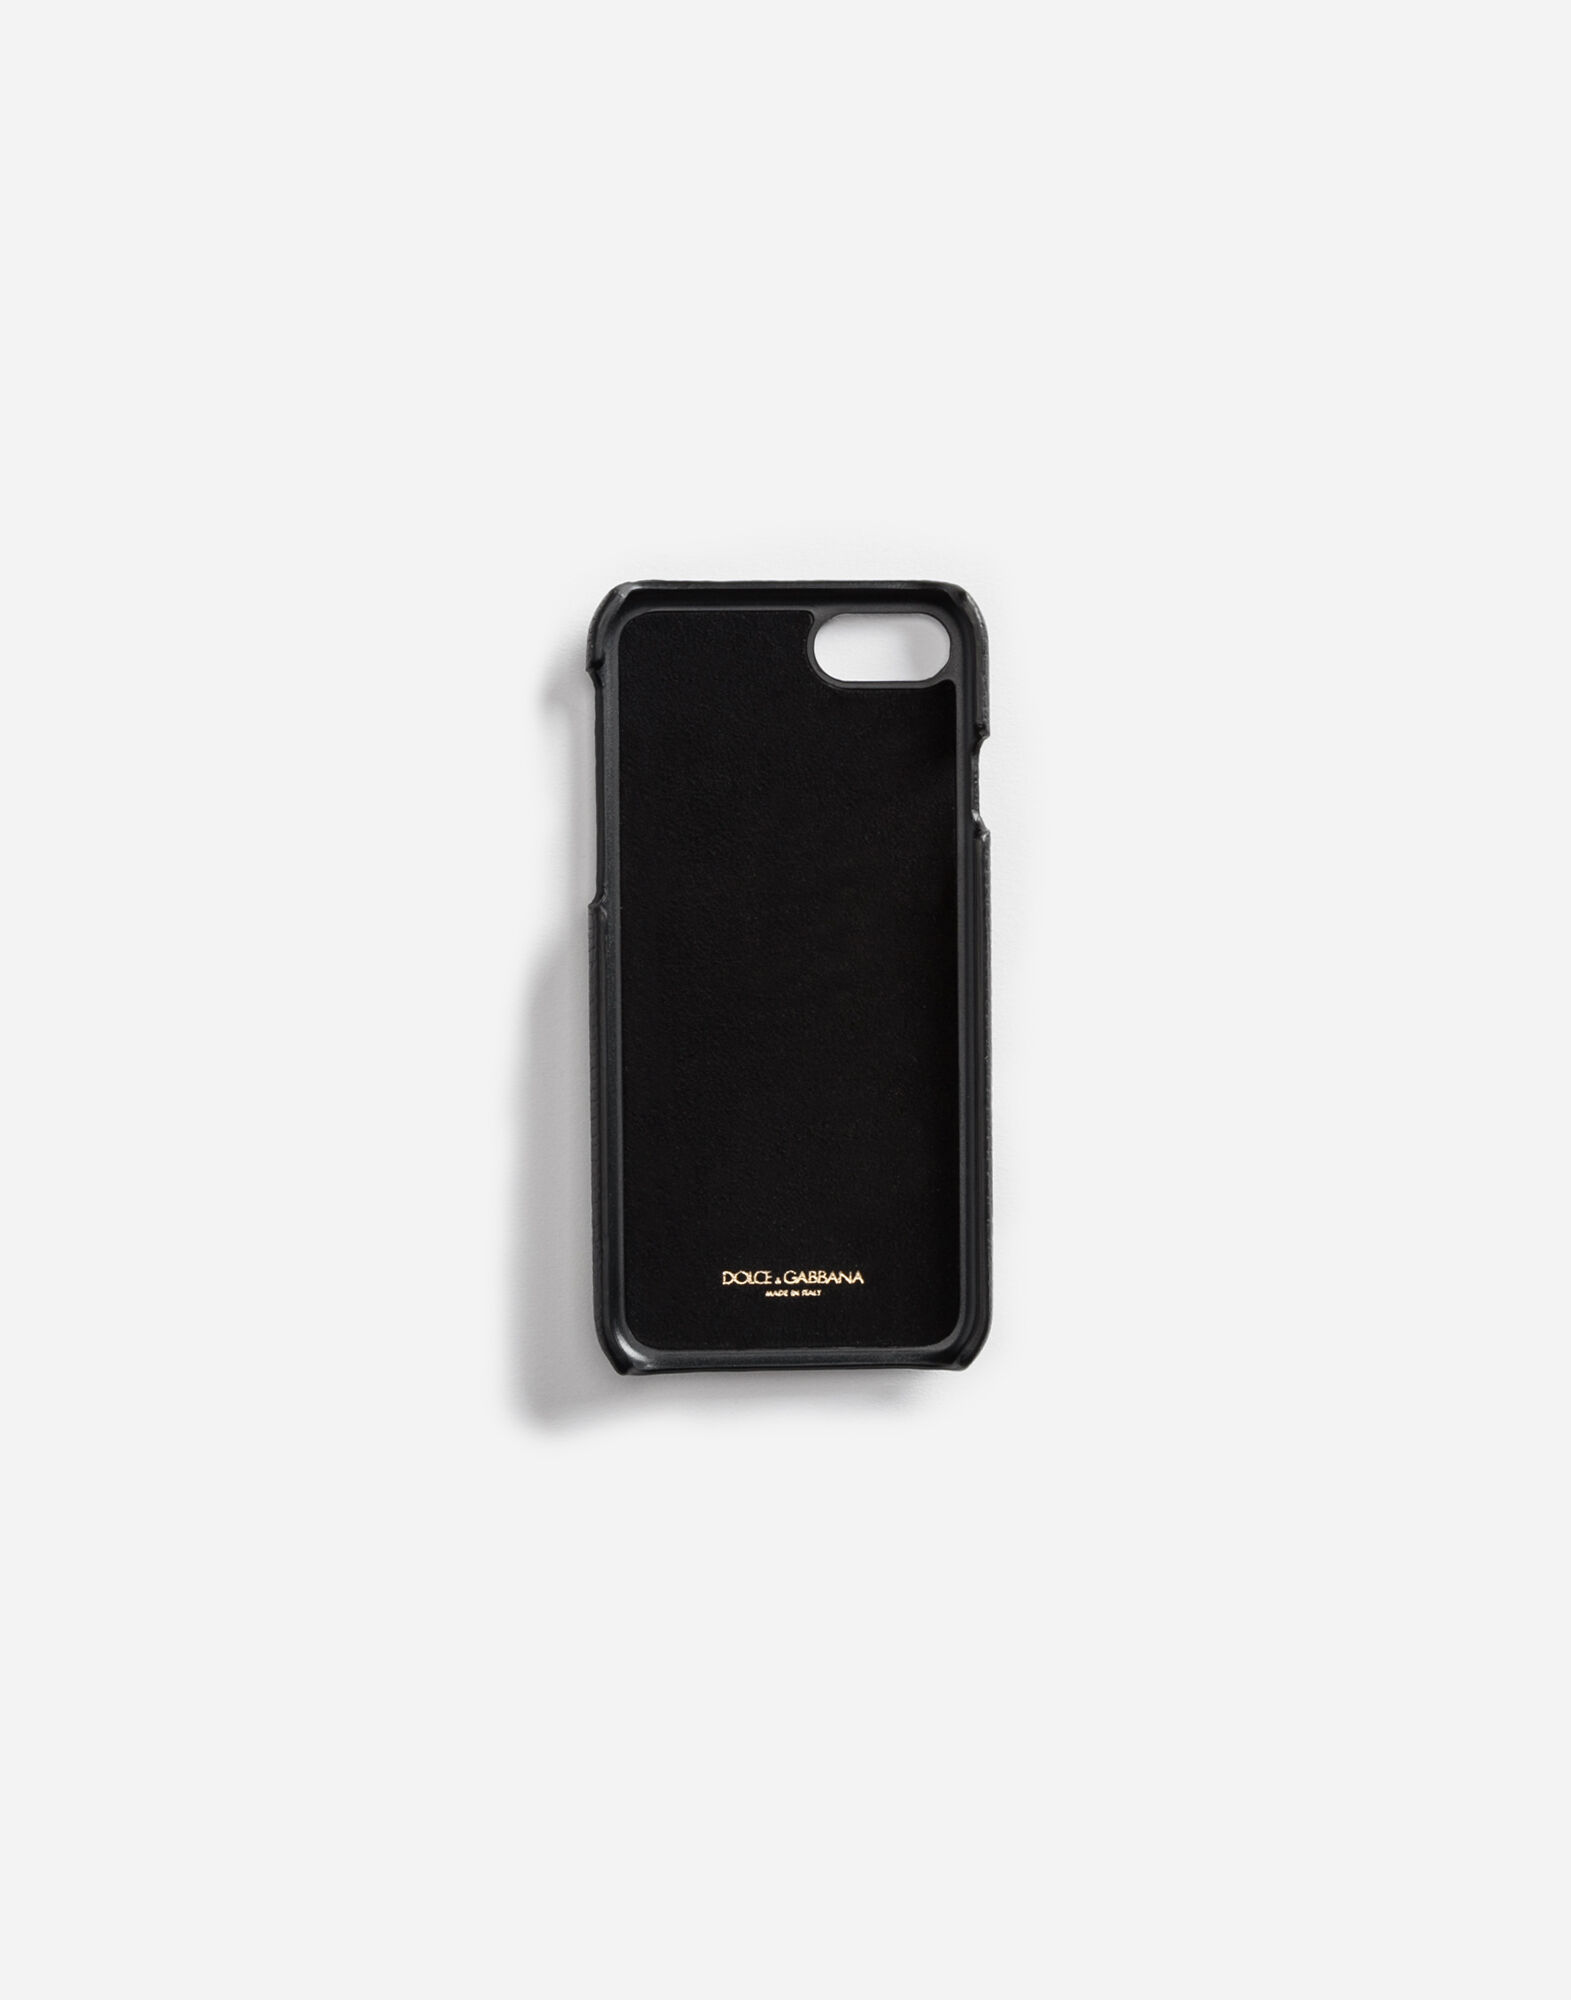 iPHONE 7 COVER IN LEATHER WITH DESIGNERS' PATCHES